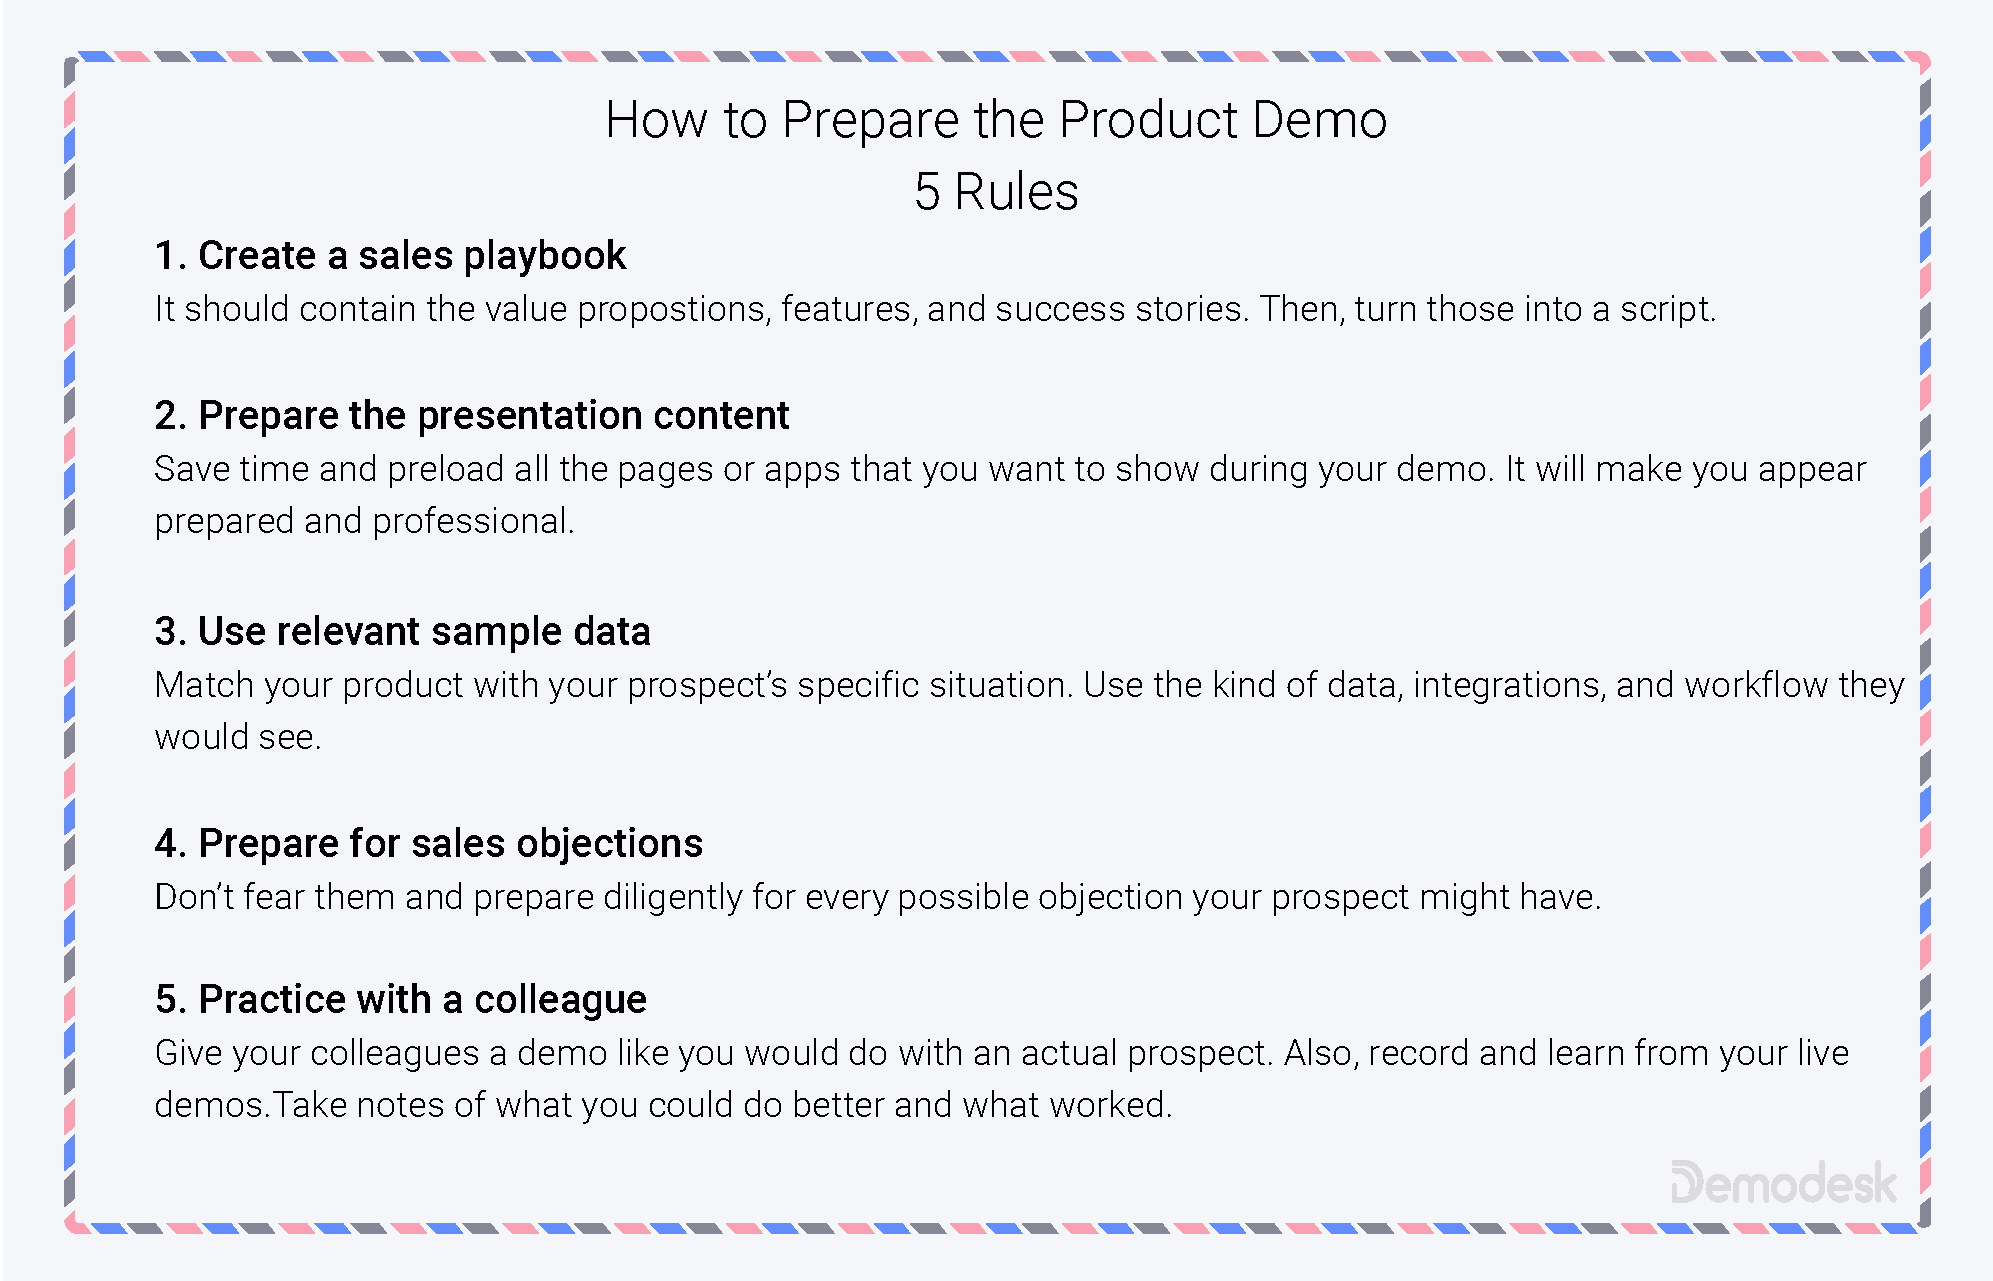 What makes a great product demo? 10 Best Practices from the